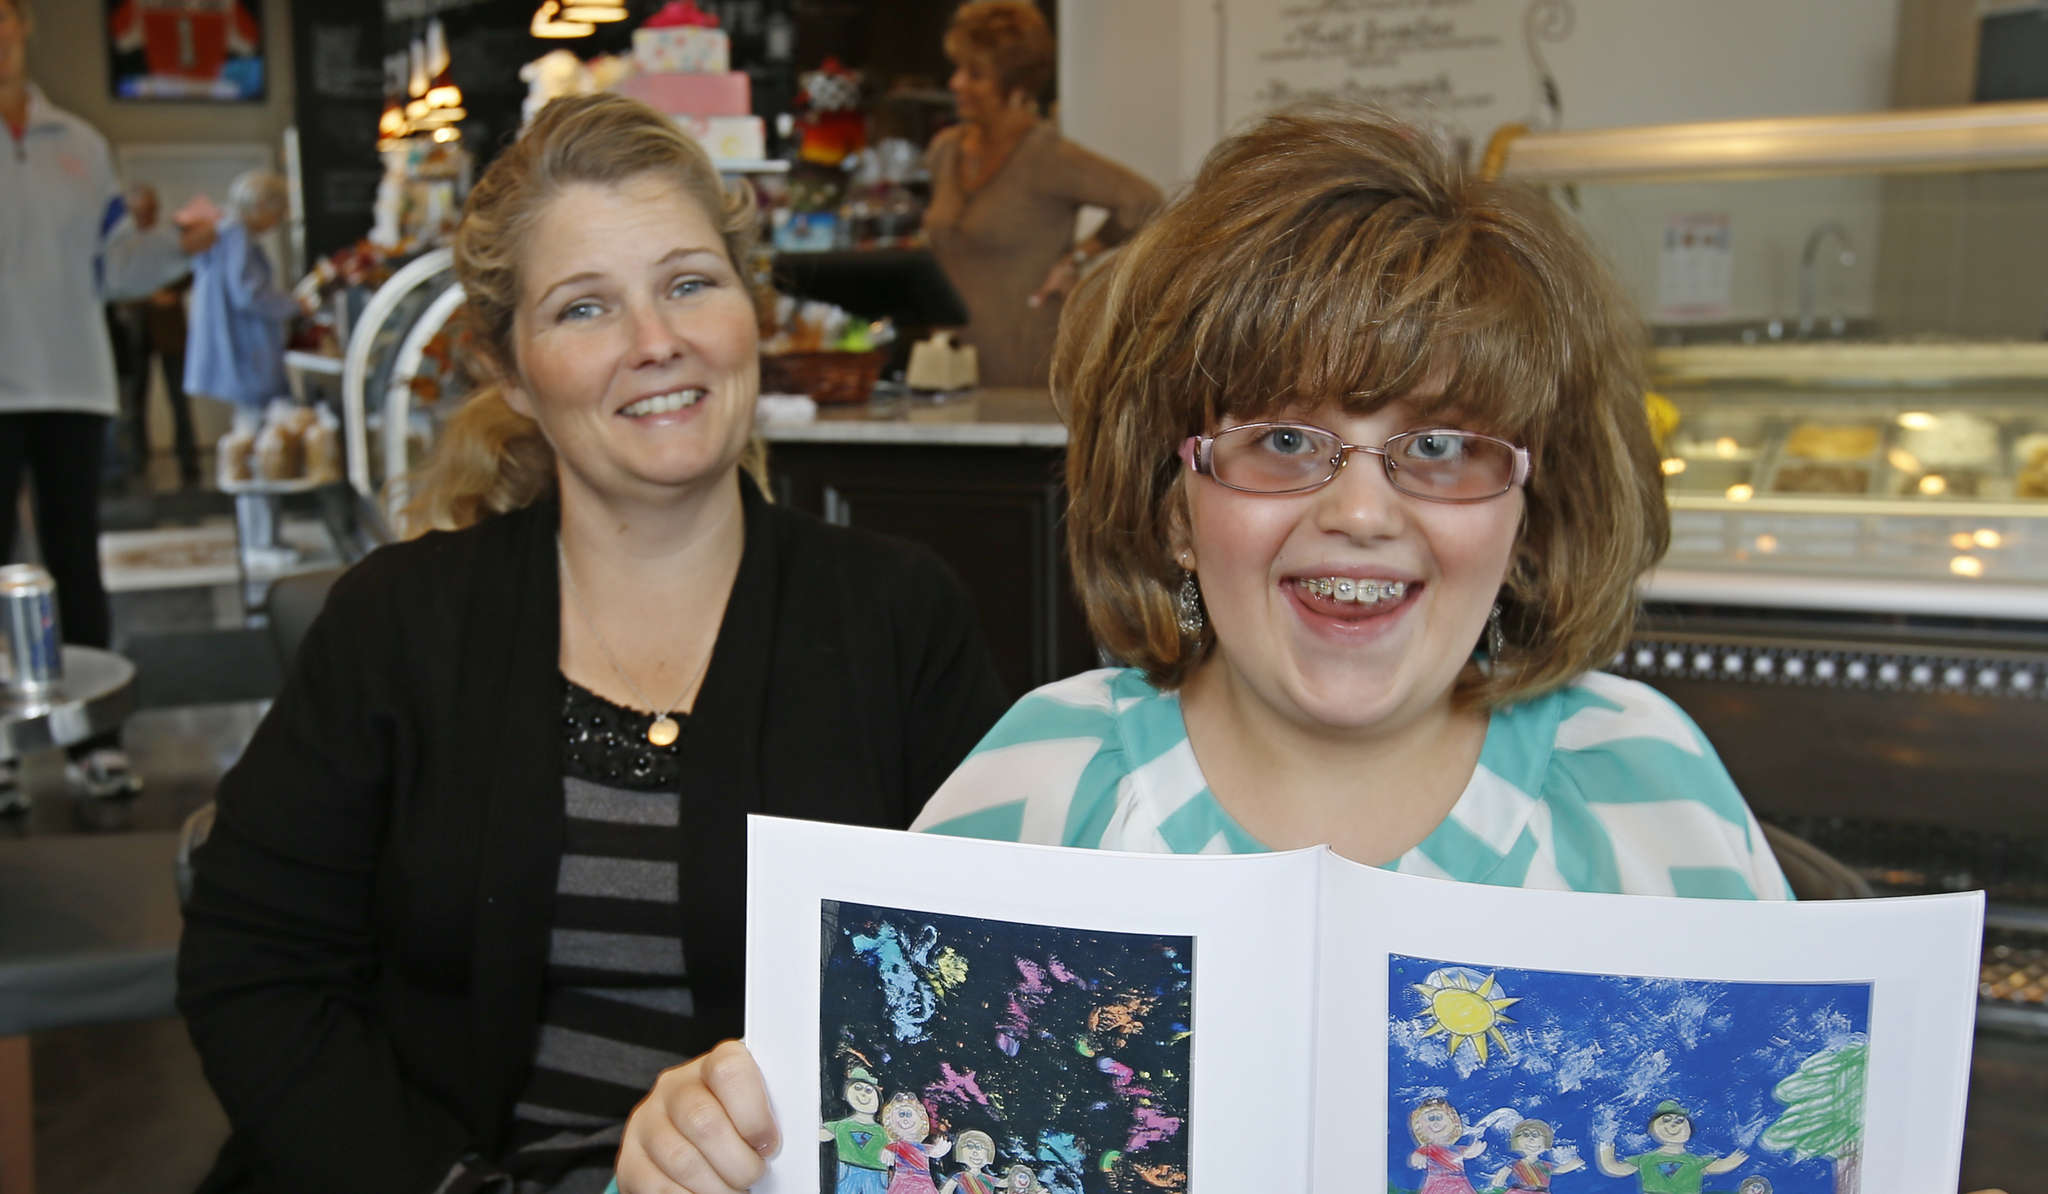 Ella Wilson, 9, a.k.a. Ella Mozzarella with her mother, Terri, at the Classic Cake Store in Cherry Hill. Ella will read her book in the store Sunday.